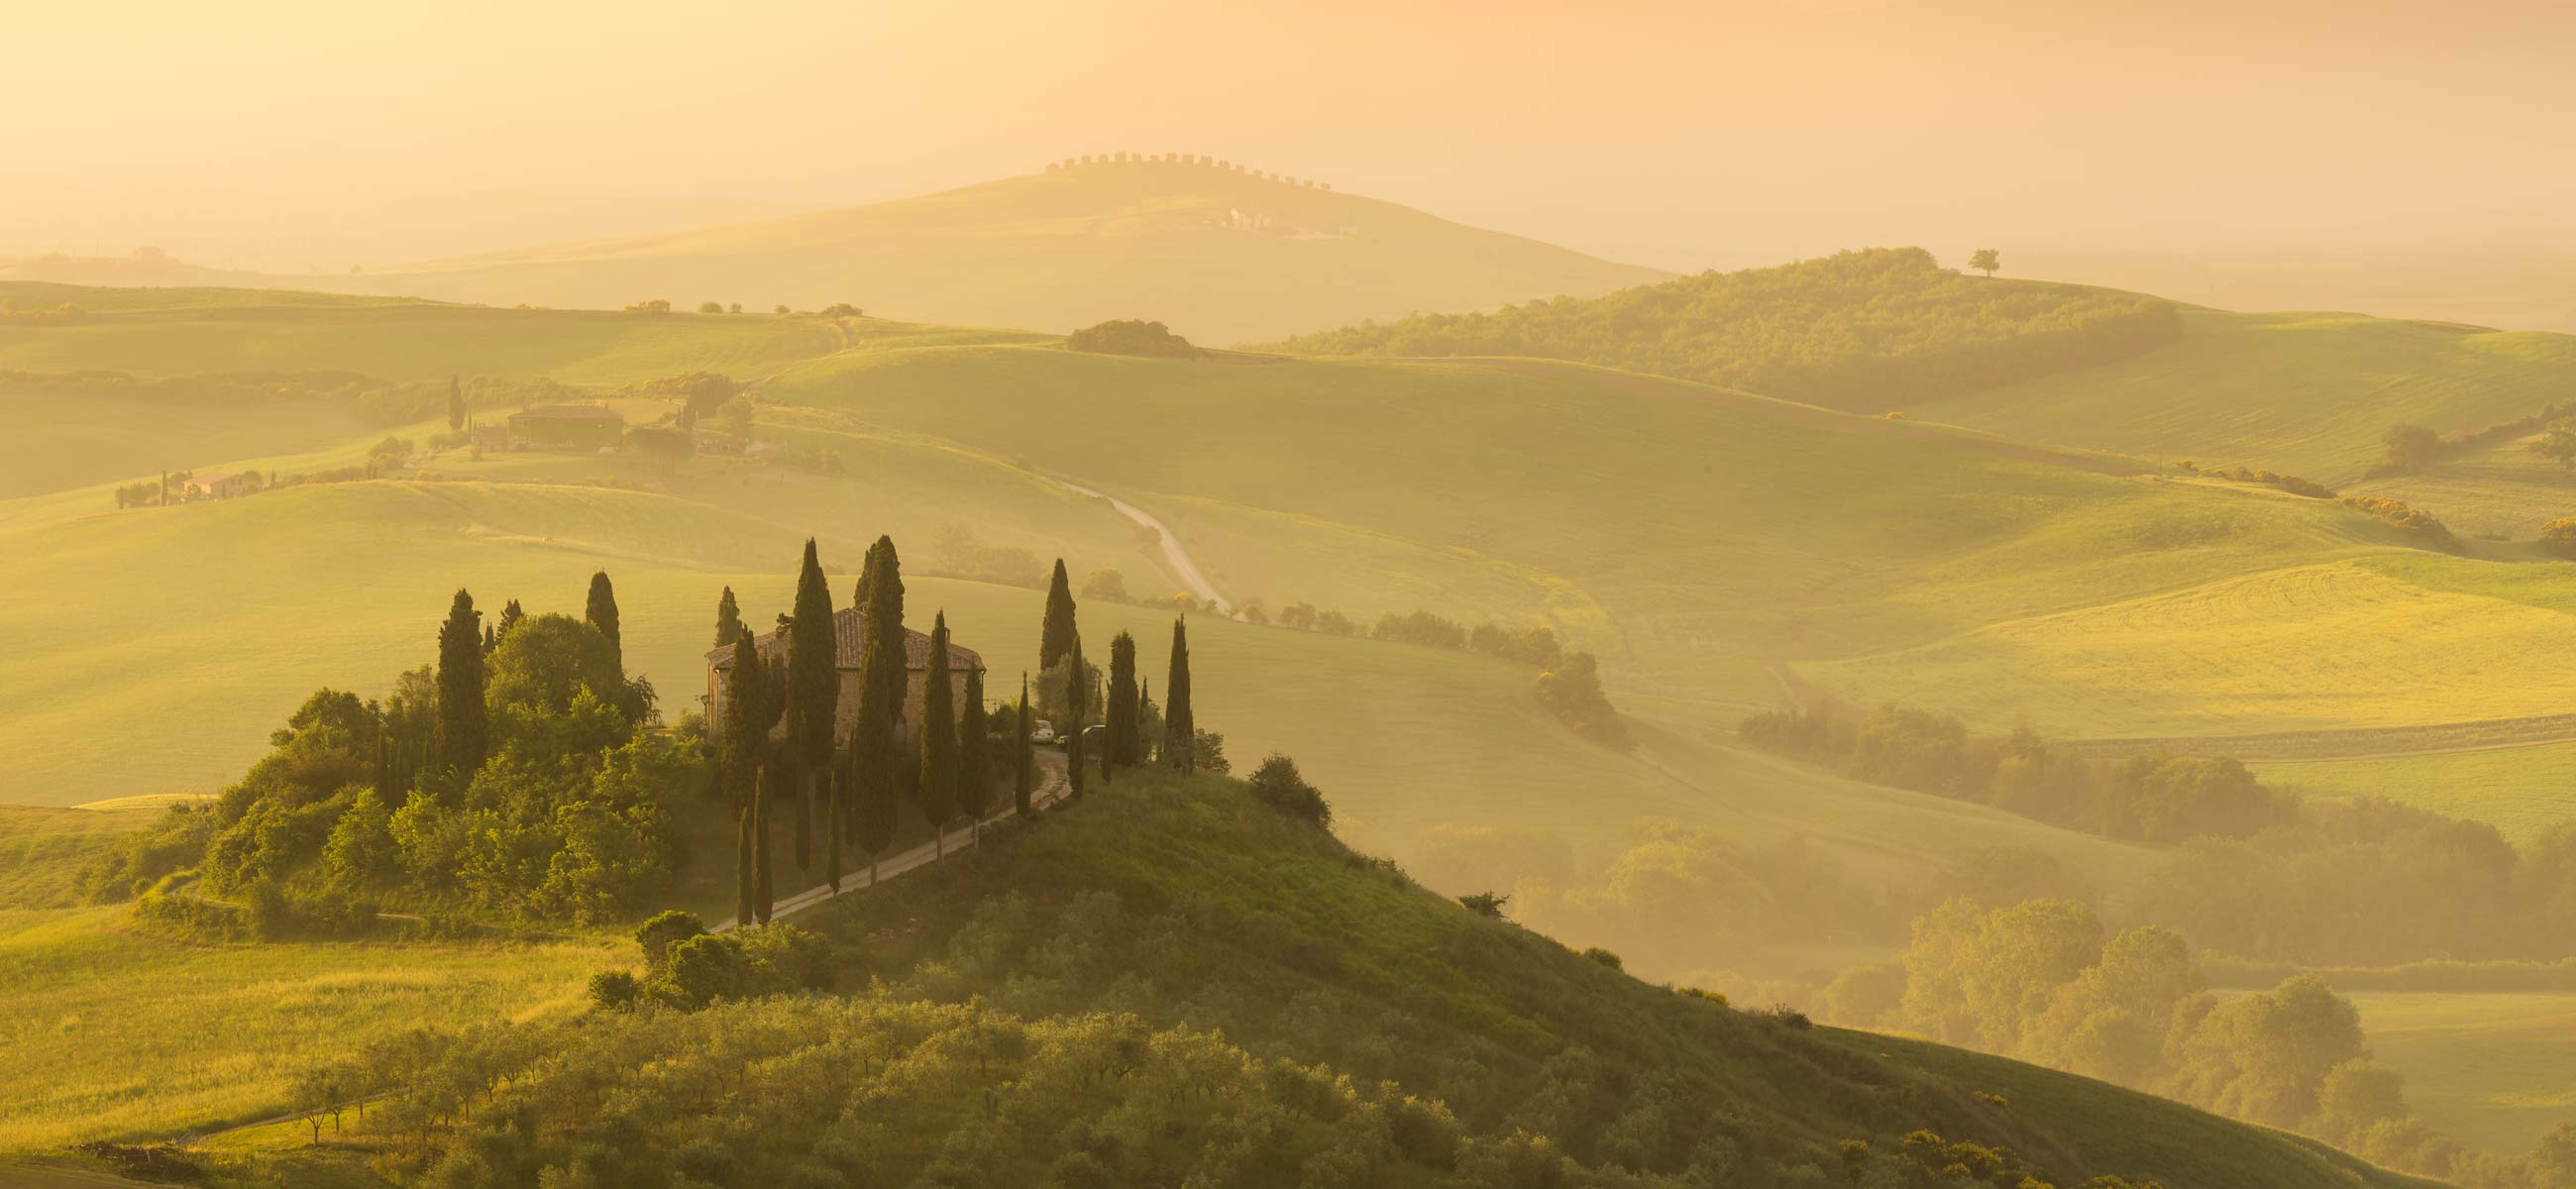 Podere Belvedere in Val d'Orcia, Tuscany on a hazy morning with side light during sunrise